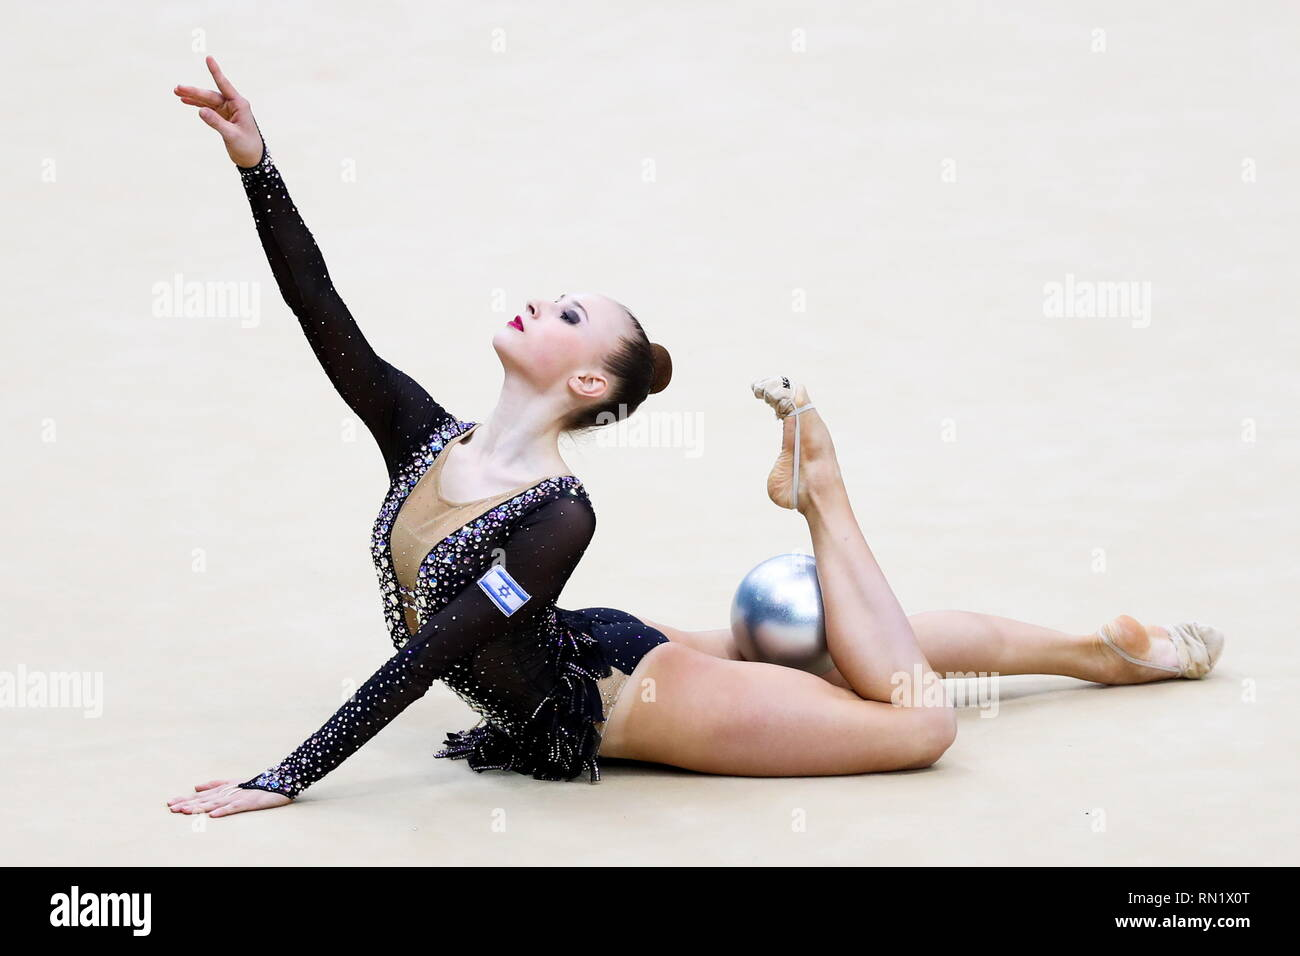 Moscow, Russia. 16th Feb, 2019. MOSCOW, RUSSIA - FEBRUARY 16, 2019: Rhythmic gymnast Nicol Voronkov of Israel performs her individual ball routine at the 2019 Alina Kabaeva Gazprom Champions Cup as part of the Gazprom for Children Programme at Moscow's Luzhniki Sports Complex. Sergei Savostyanov/TASS Credit: ITAR-TASS News Agency/Alamy Live News - Stock Image